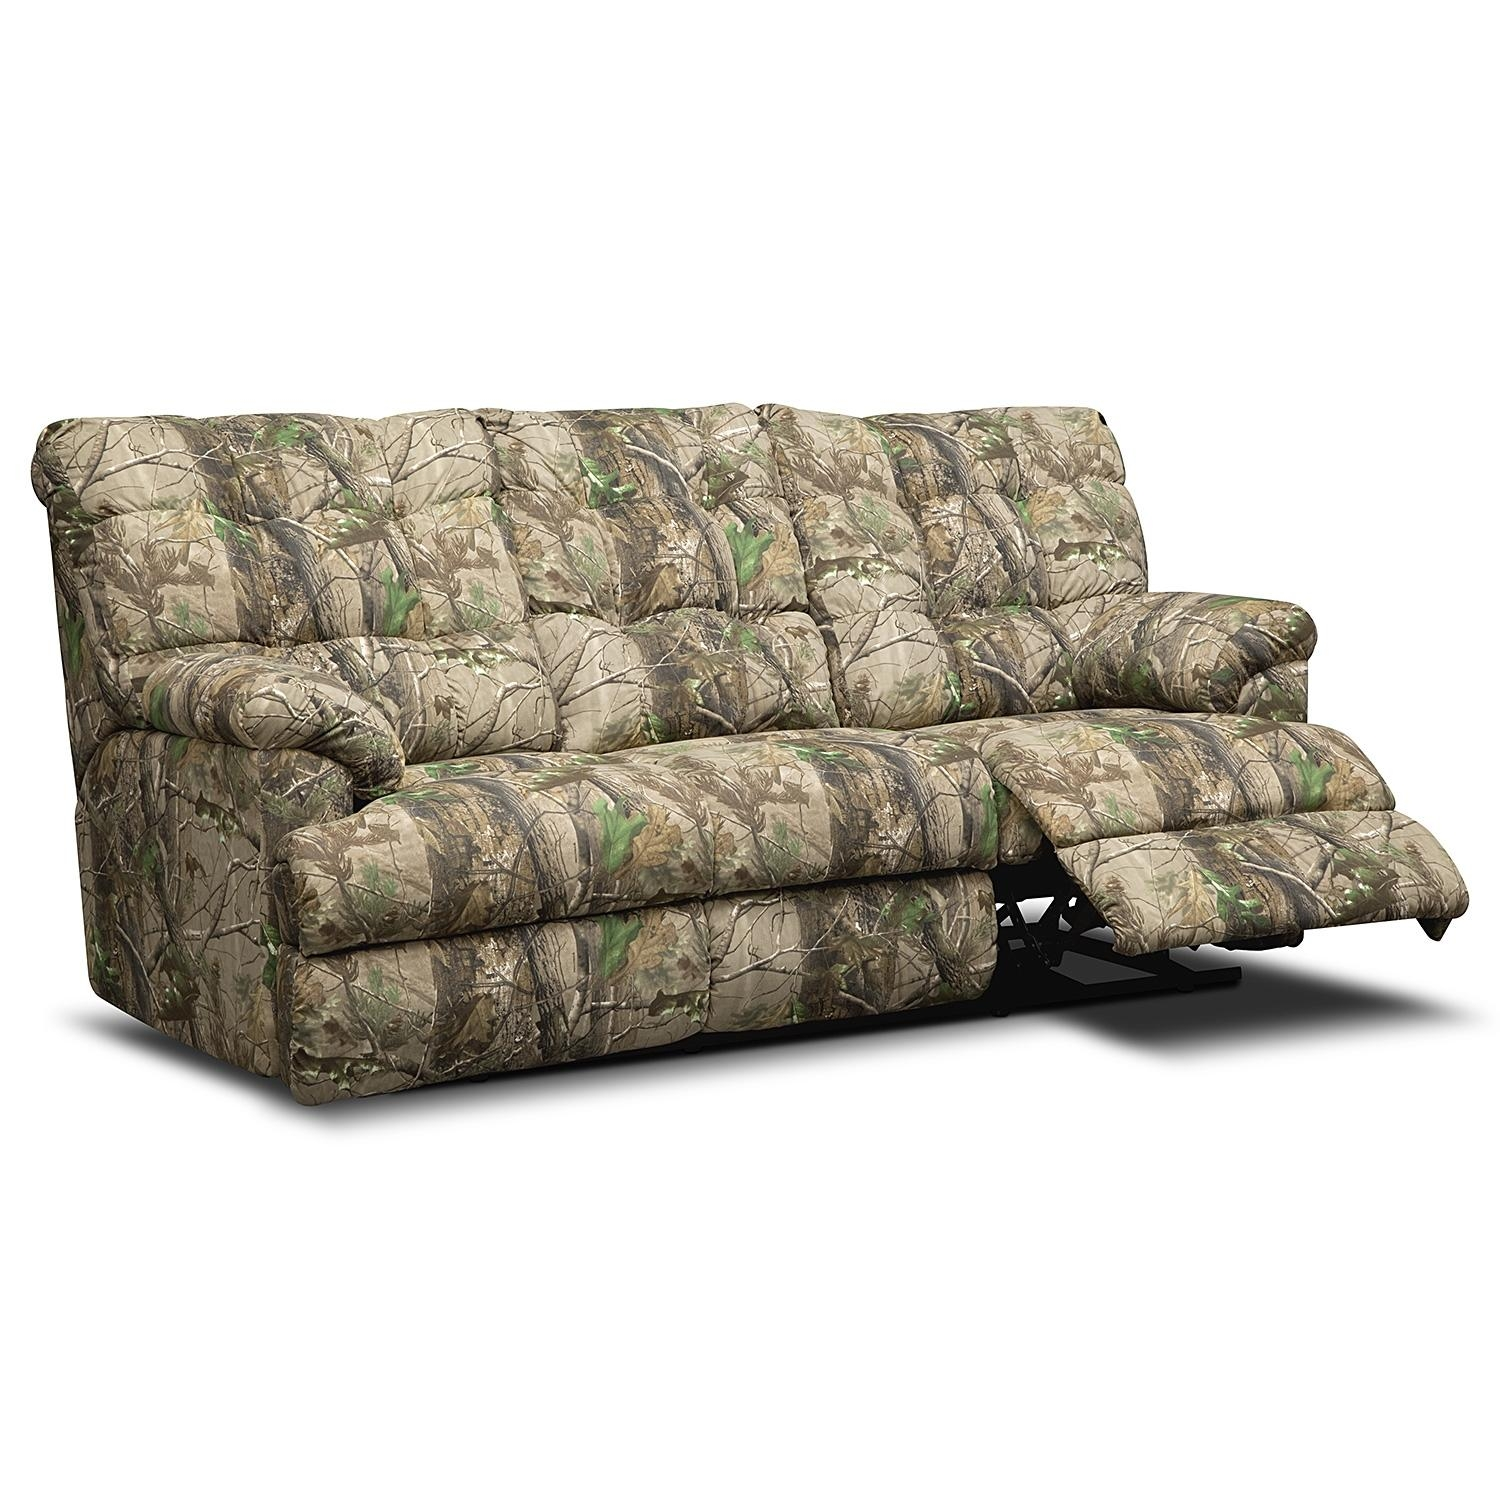 Decorating: Unique Interior Furniture Decoration With Exciting Regarding Camo Reclining Sofas (Image 10 of 20)